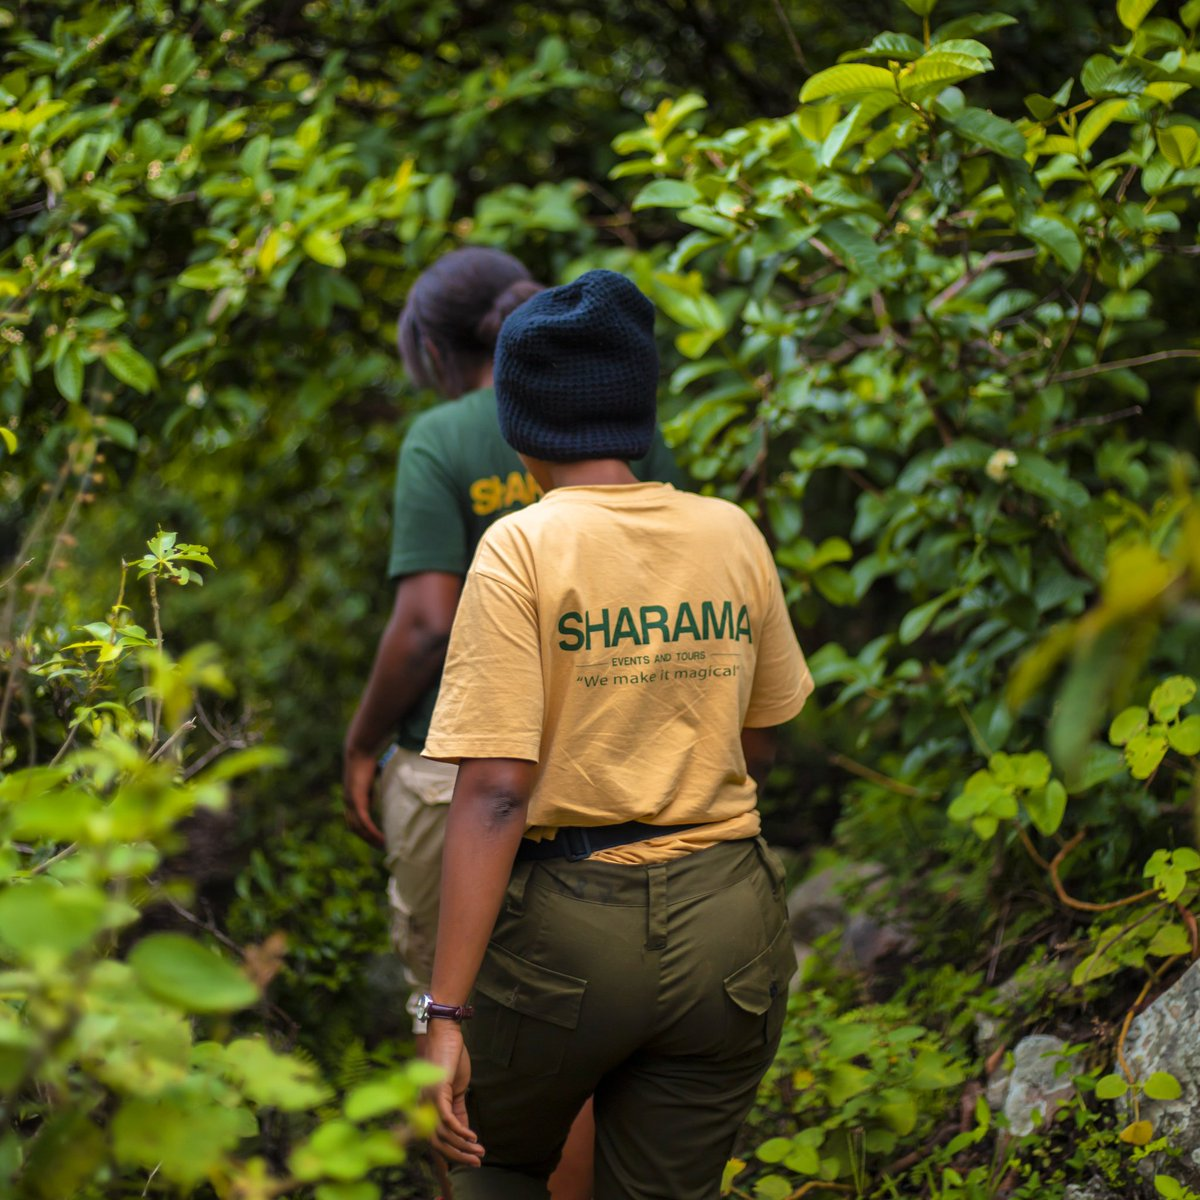 #RwOT Get lost in nature with us 🤩..You'll find yourself!!! #VisitRwanda #Travelwithsharama @sharama_etours  . #rwandalicious #Madeinrwanda #travellingthroughtheworld #travelphotography #nature #adventure #africa #wildlifephotography #safari #femaleguides #rwandatourism https://t.co/uCEvE3siGG